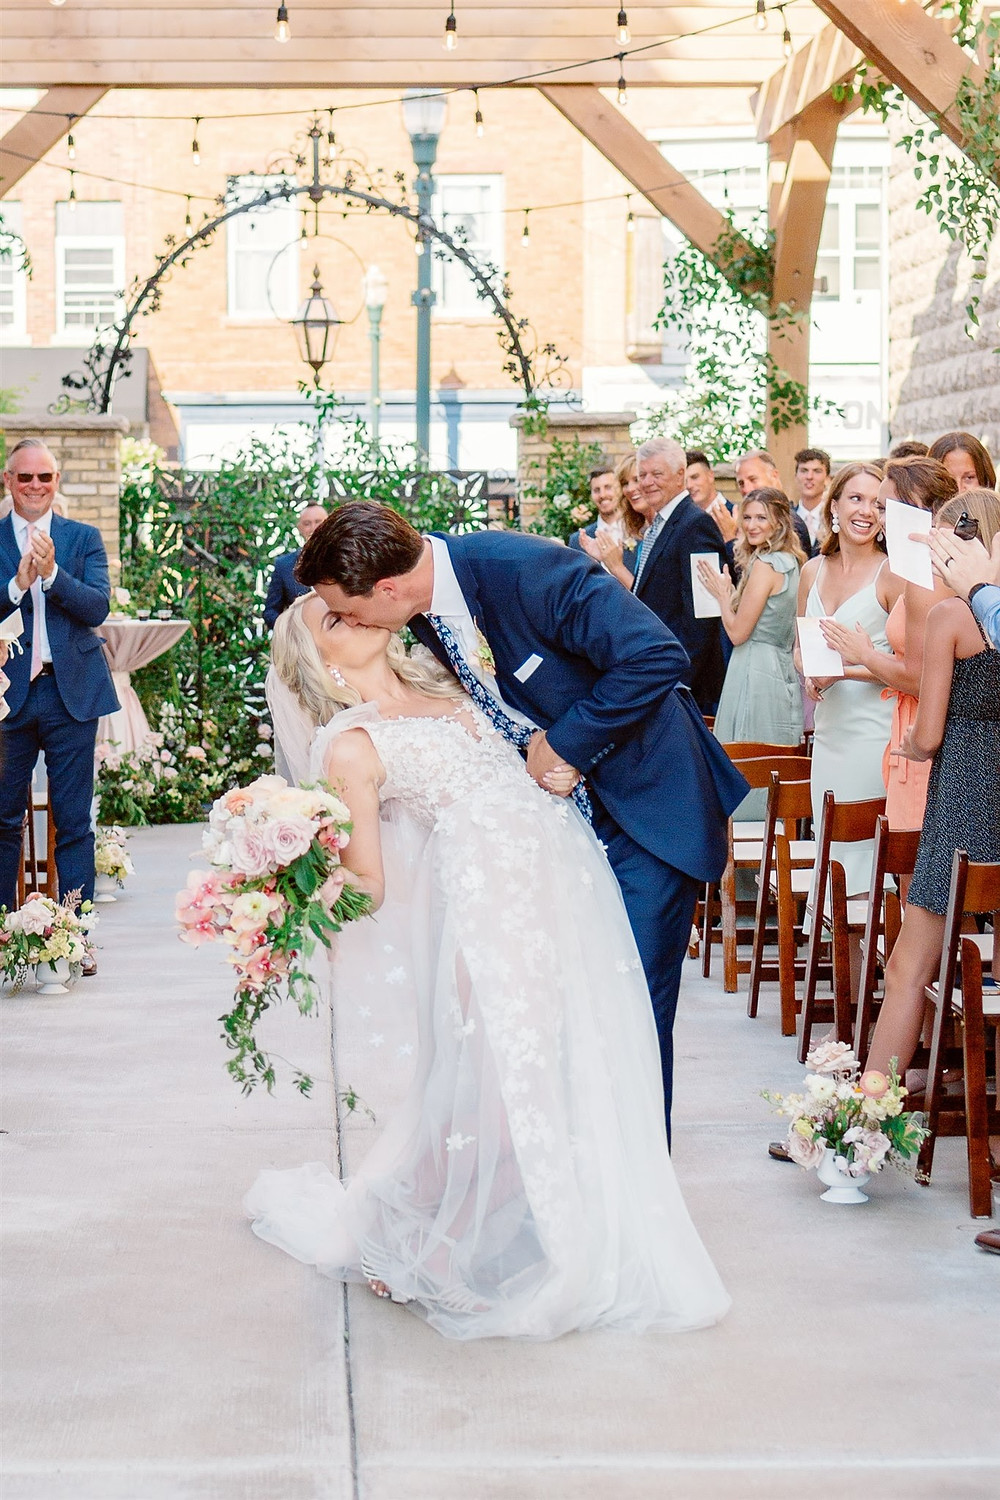 First kiss at wedding ceremony